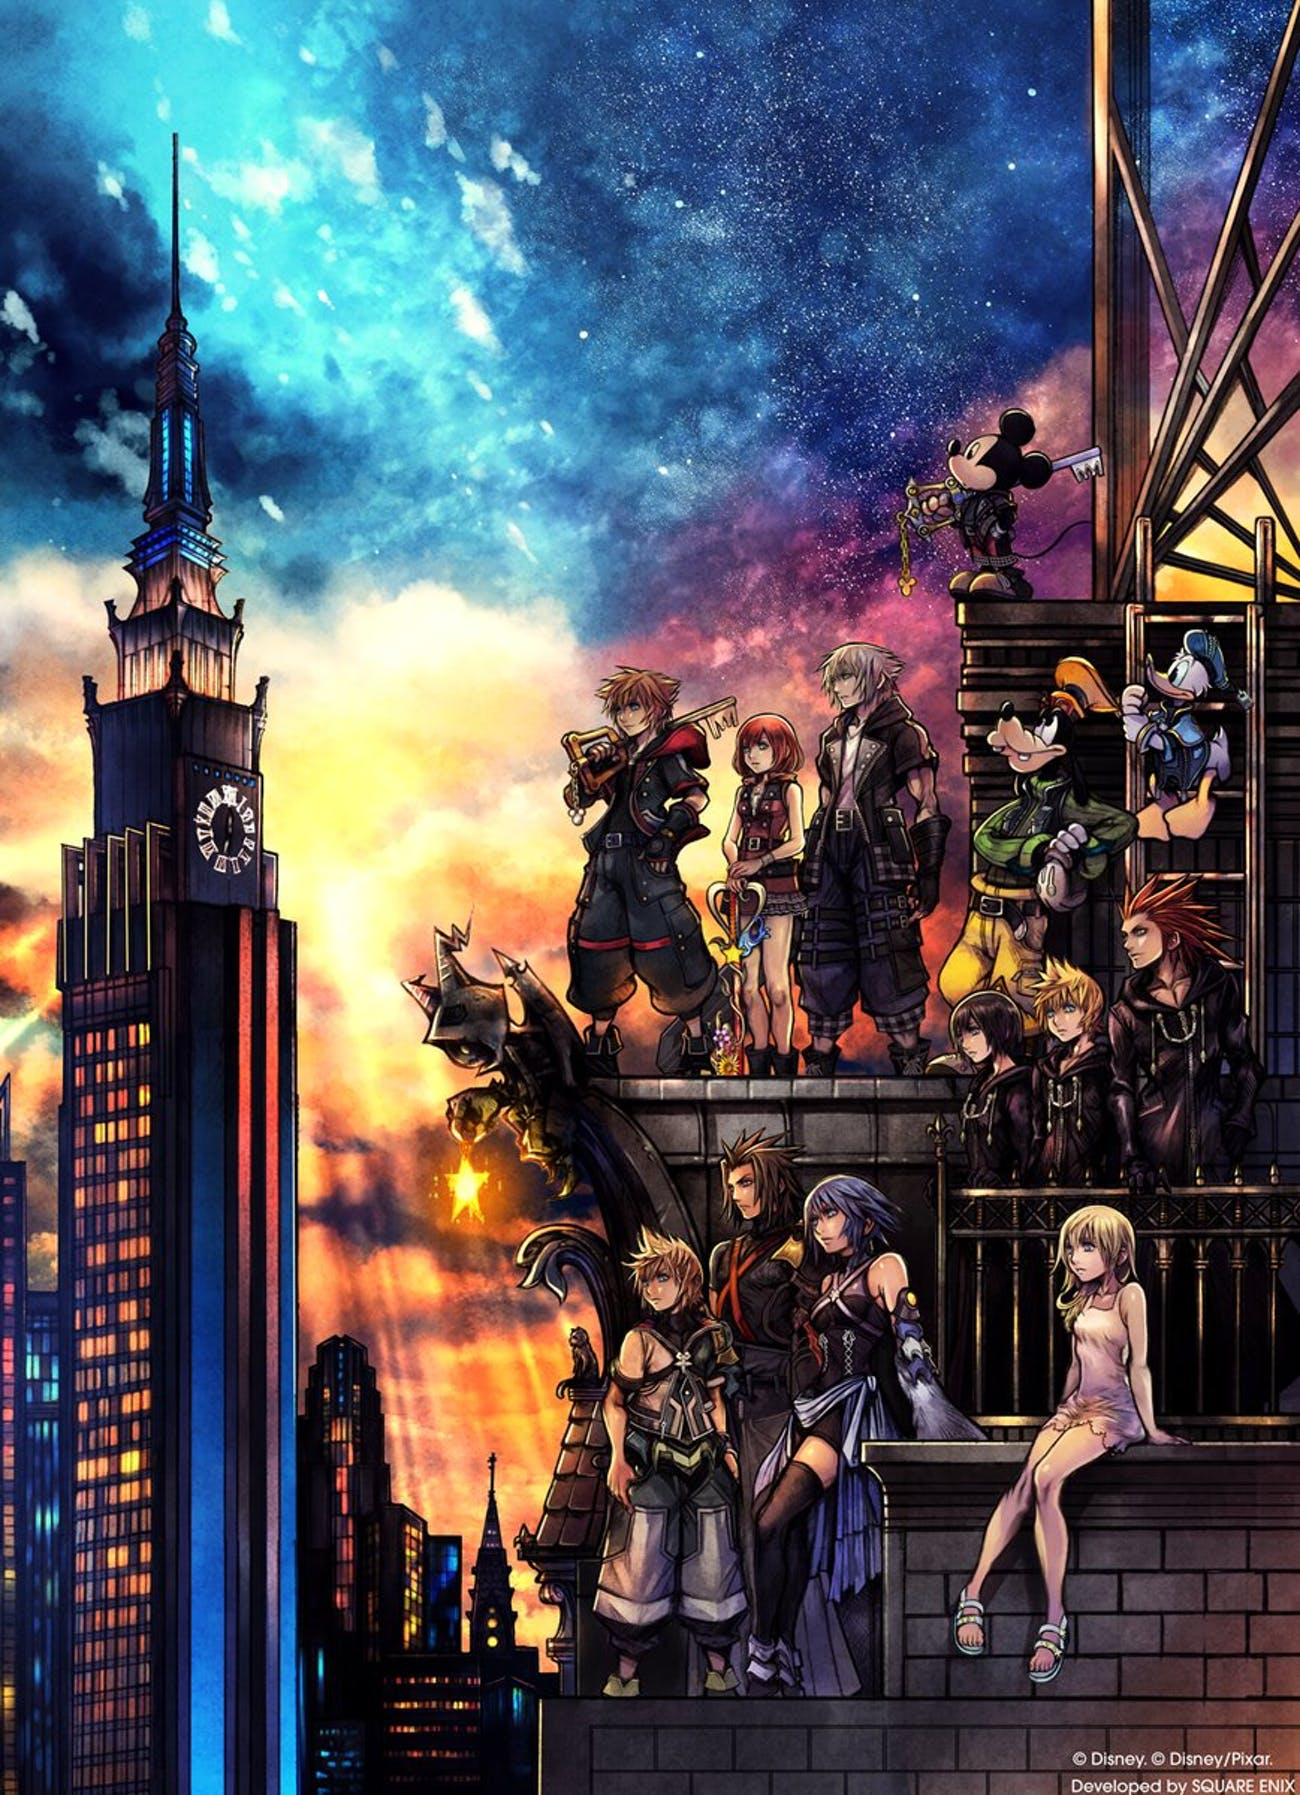 'Kingdom Hearts III' cover art.